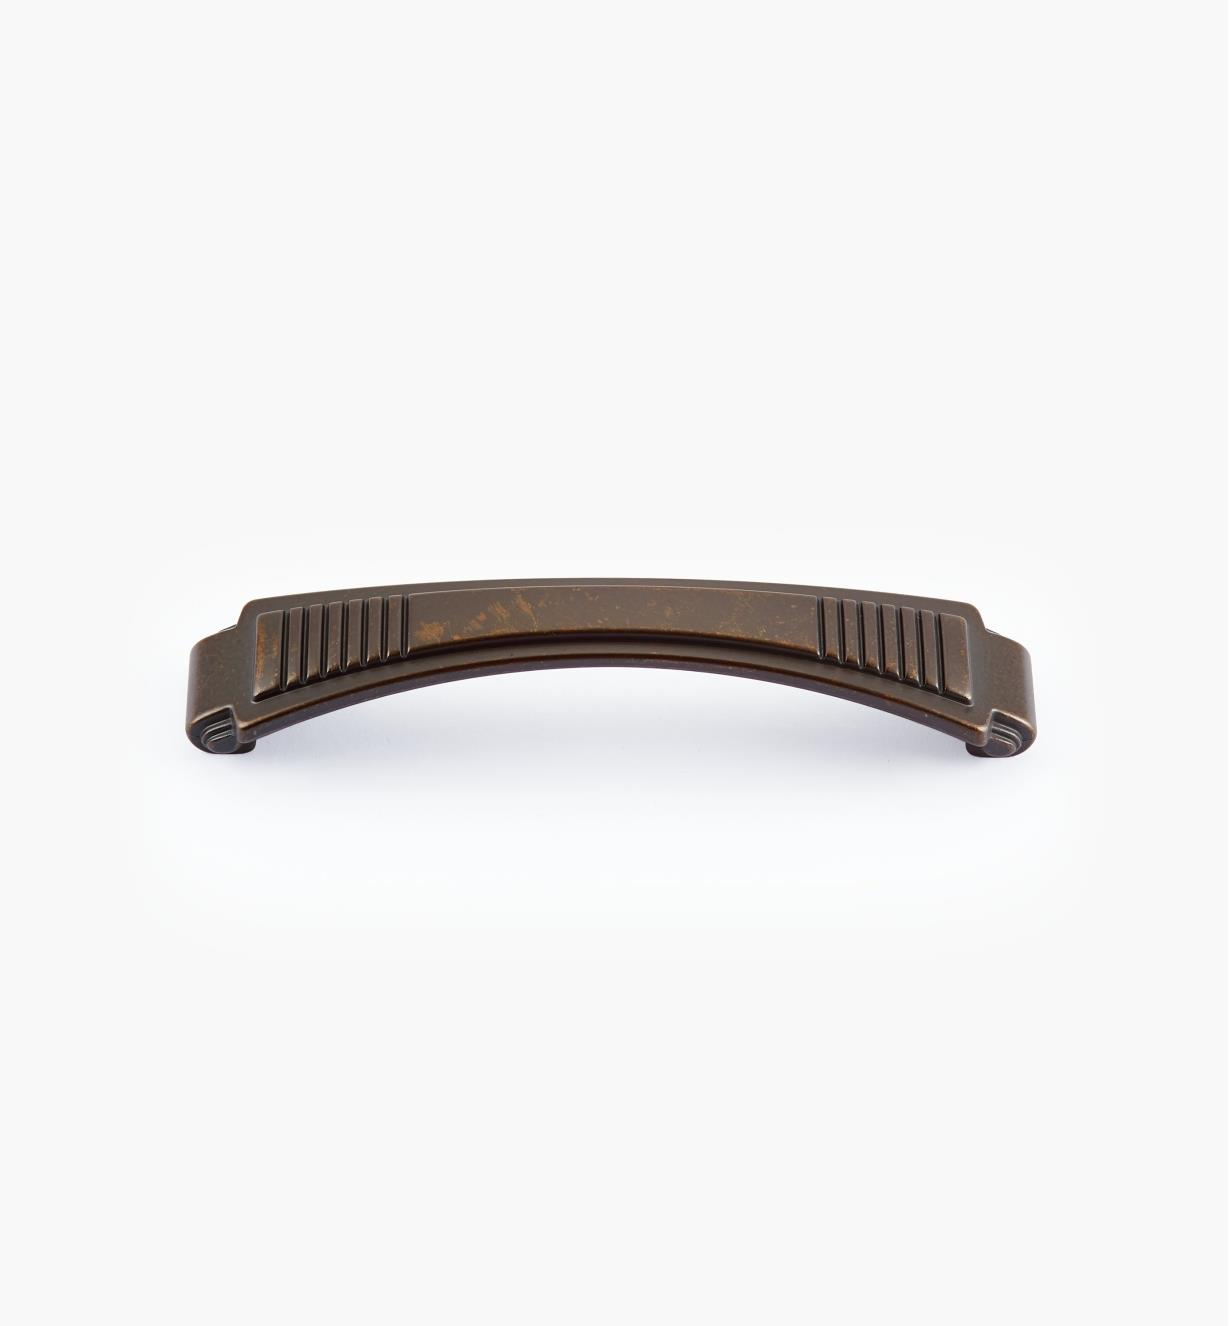 00A7624 - Belair Hardware – Dark Bronze Handle